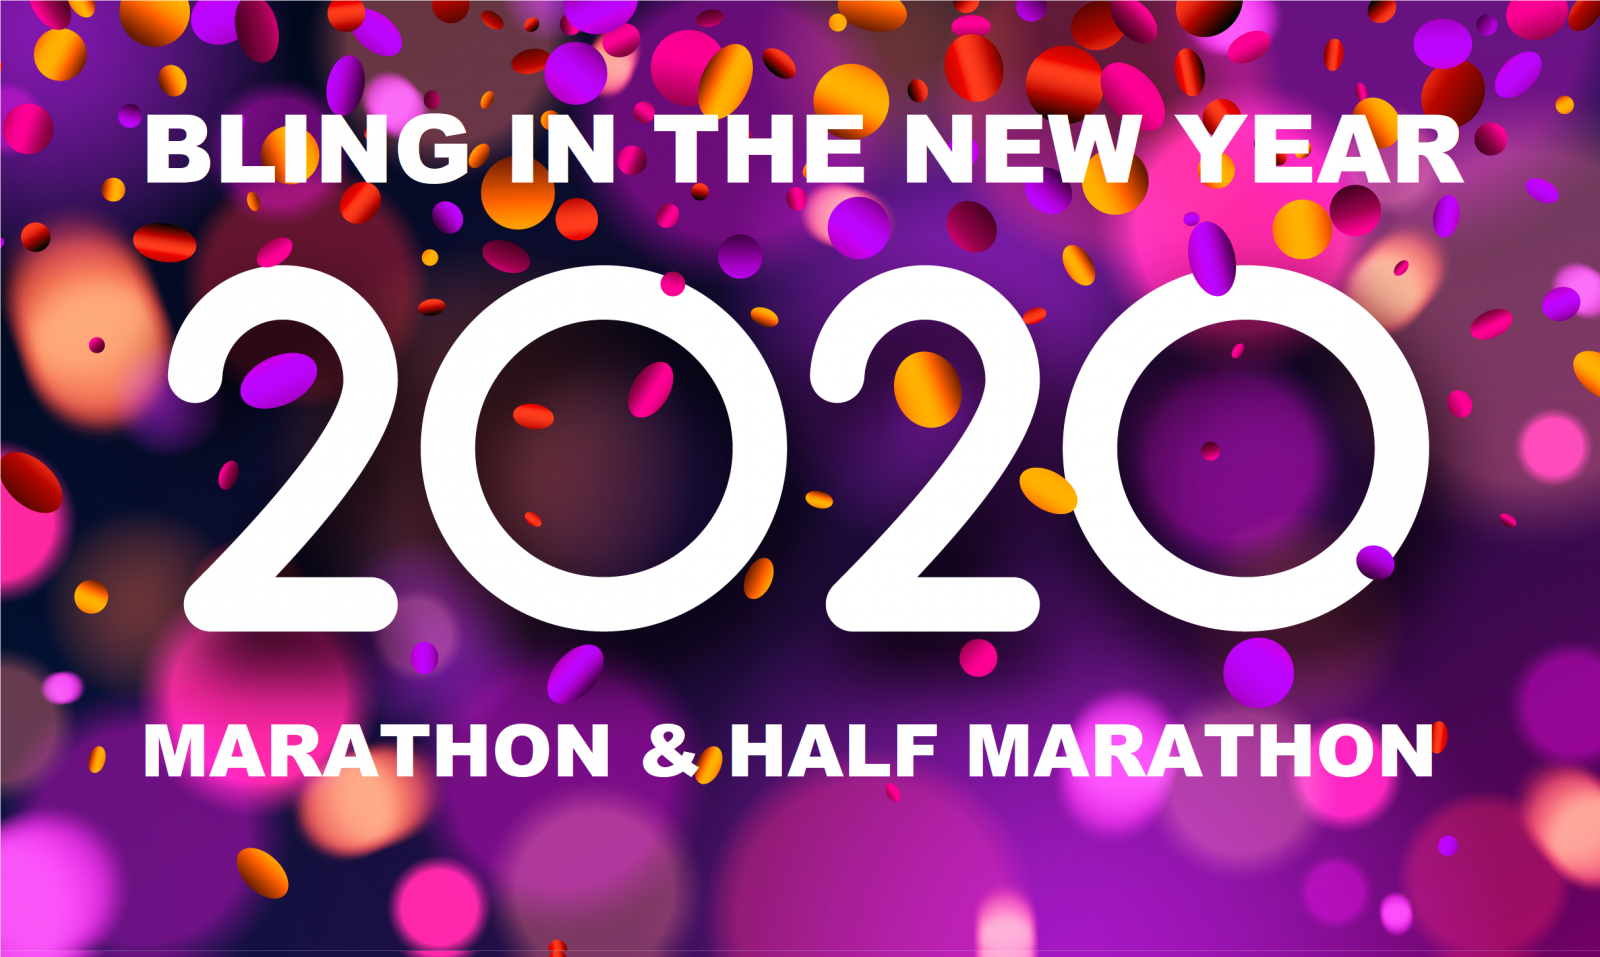 Bling in the New Year Marathon & Half Marathon logo on RaceRaves